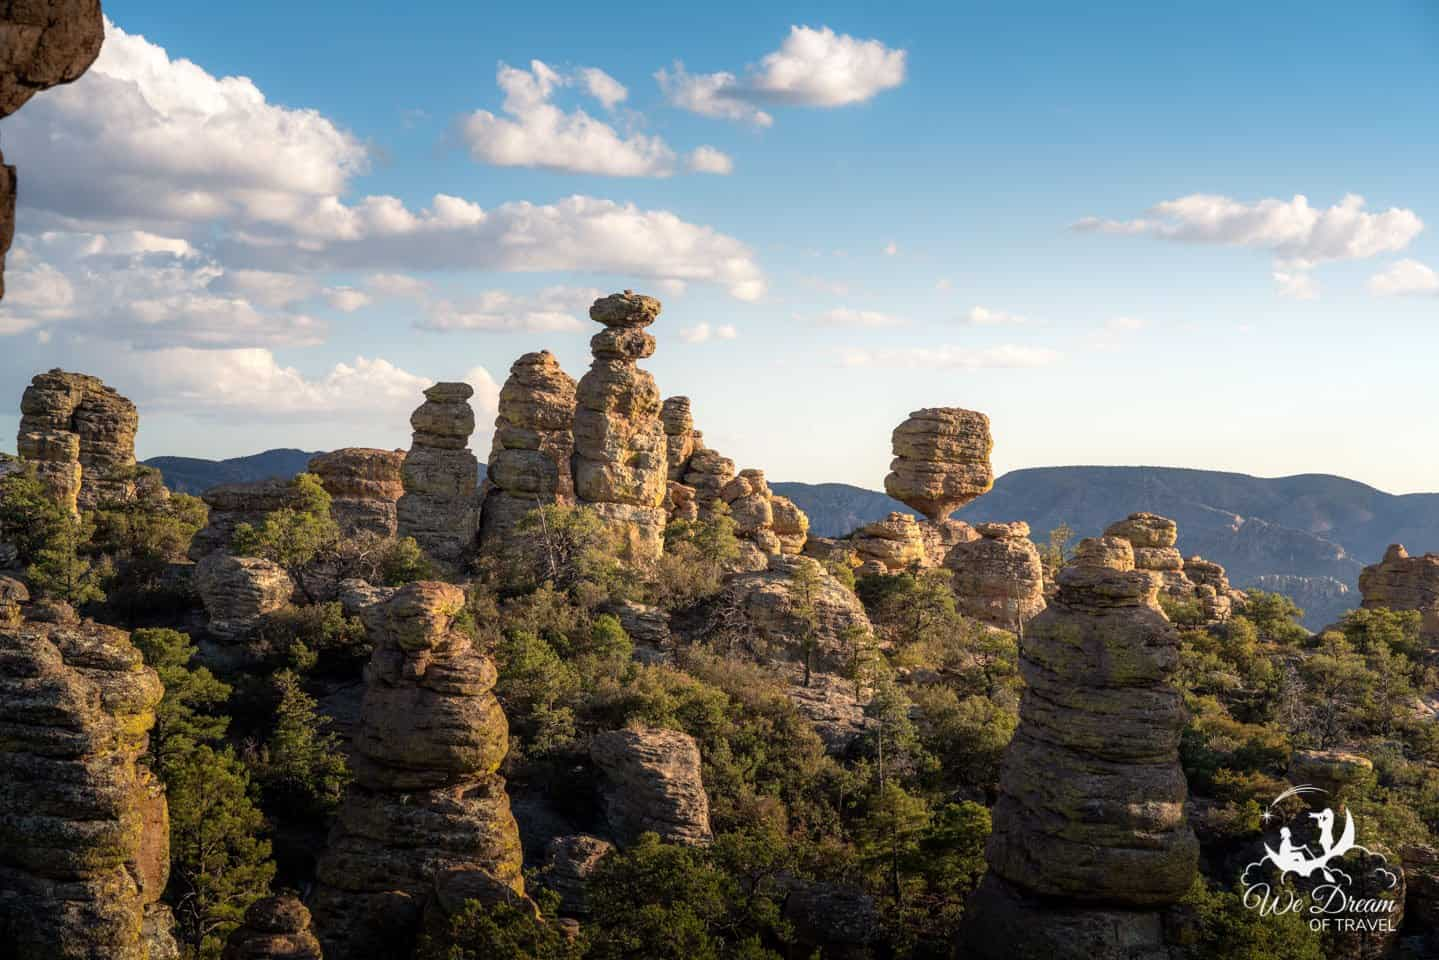 Rock pinnacles and balanced rocks against a backdrop of mountains in Chiricahua